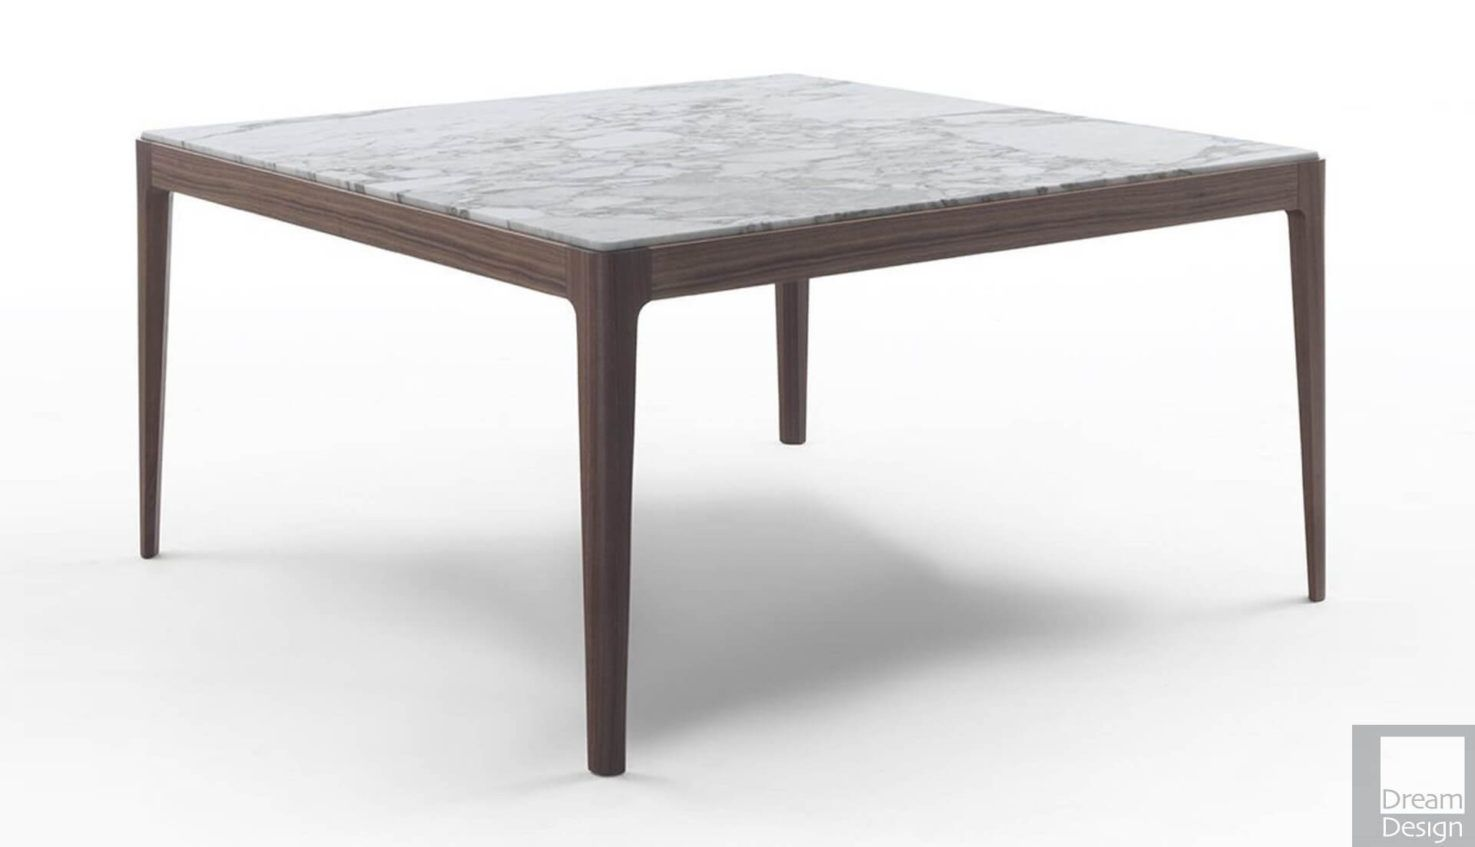 Porada Ziggy Square Table